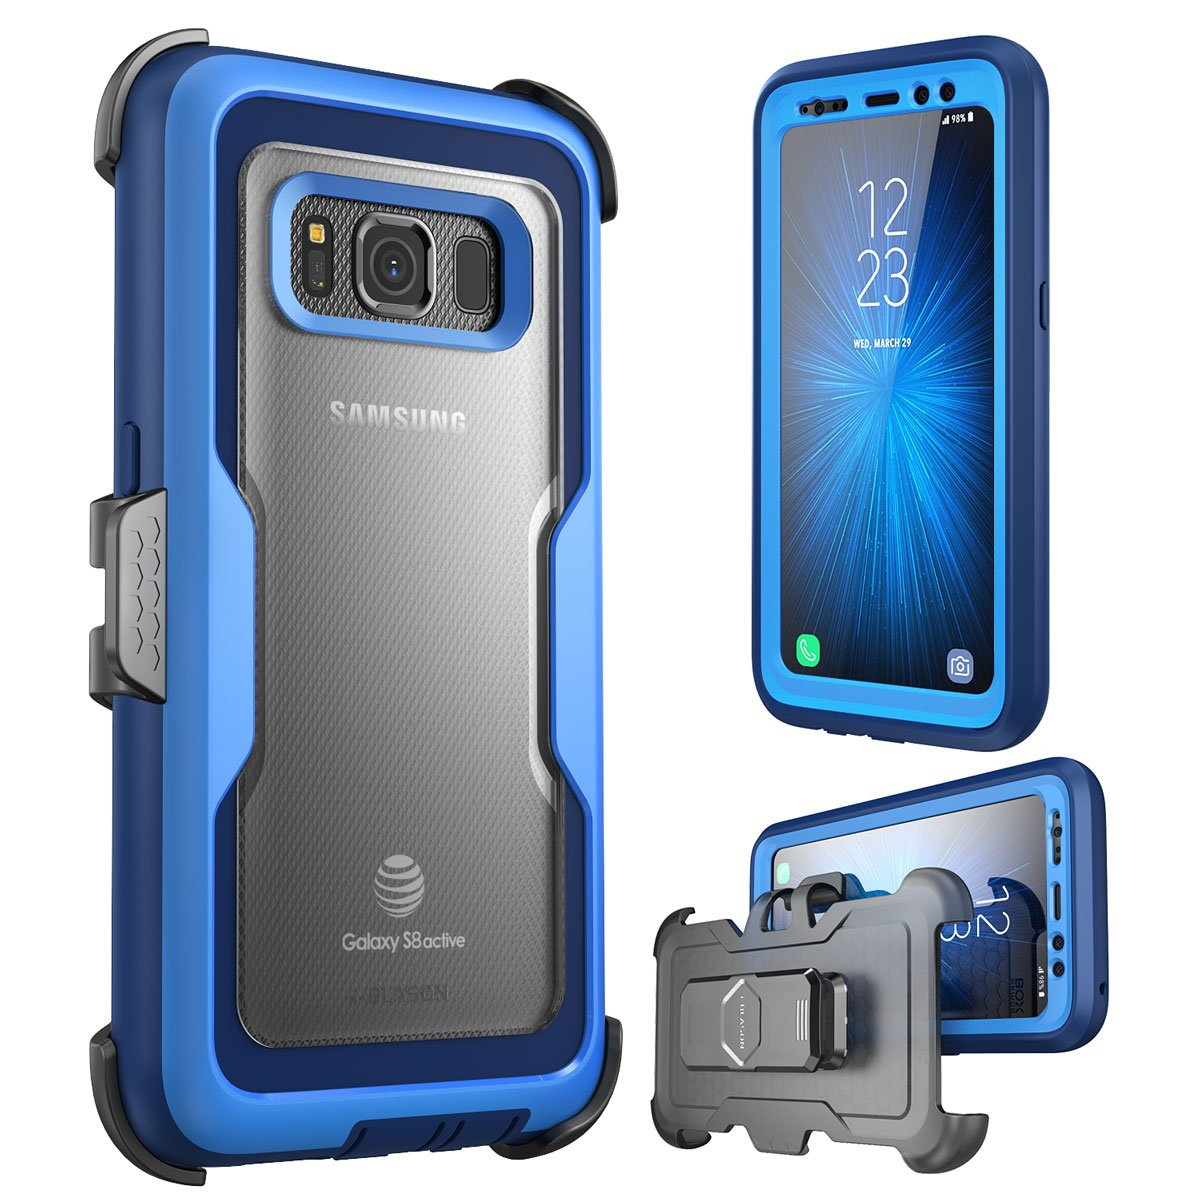 i-Blason Galaxy S8 Active Case, [Magma] [Full Body] [Heavy Duty Protection] Shock Reduction/Bumper Case with Built-in Screen Protector for Samsung Galaxy S8 Active (Not Fit Galaxy S8/S8 Plus) (Blue)